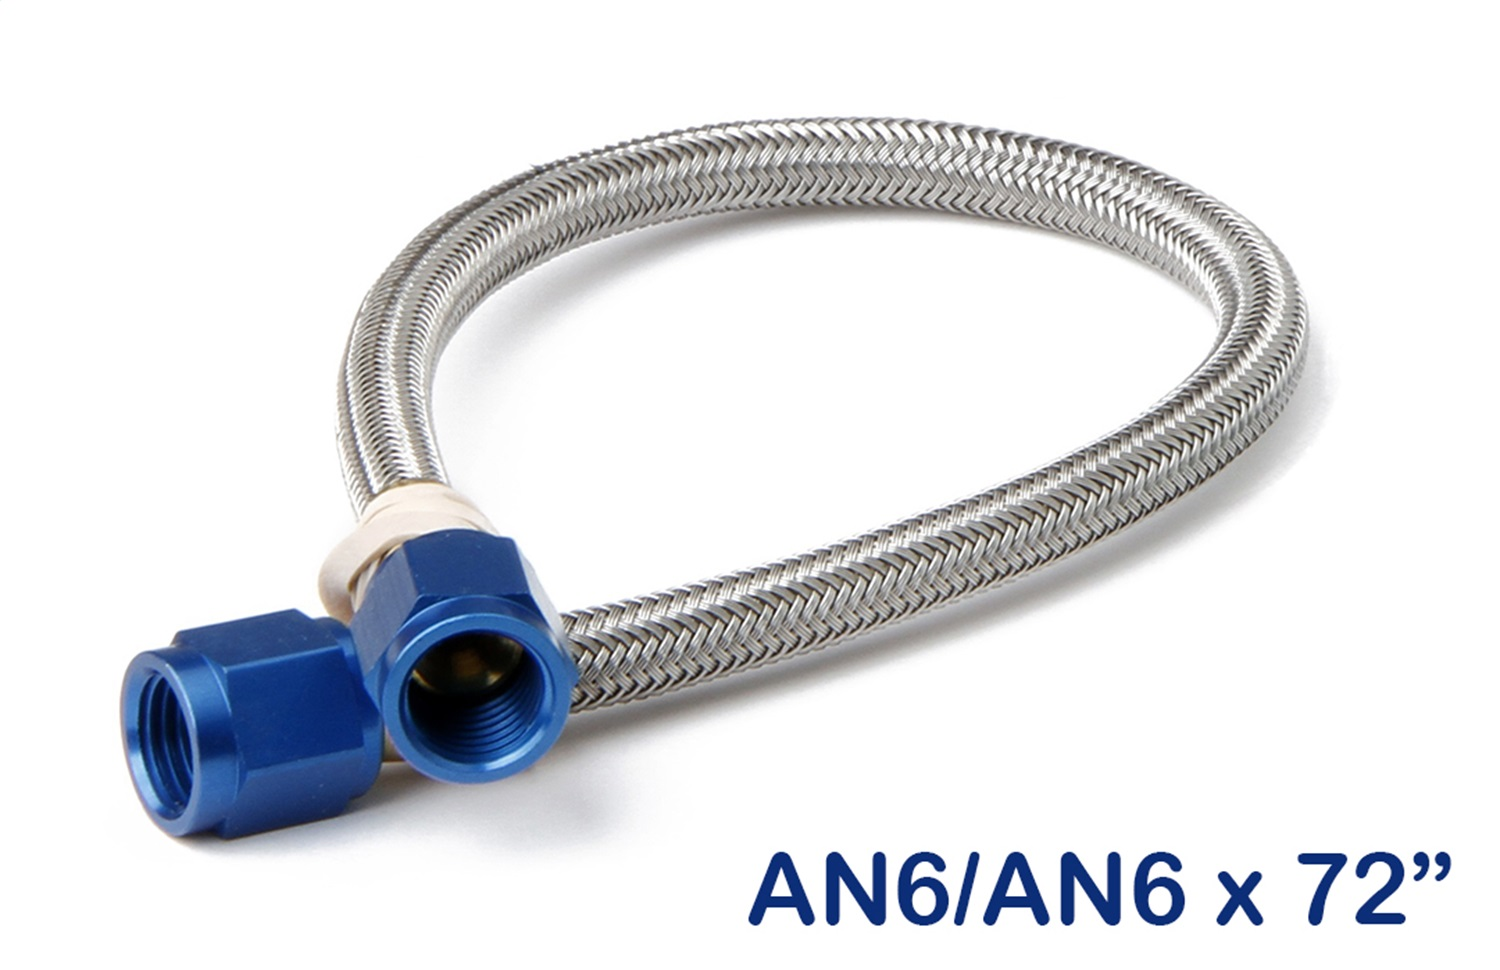 NOS 15430NOS Stainless Steel Braided Hose